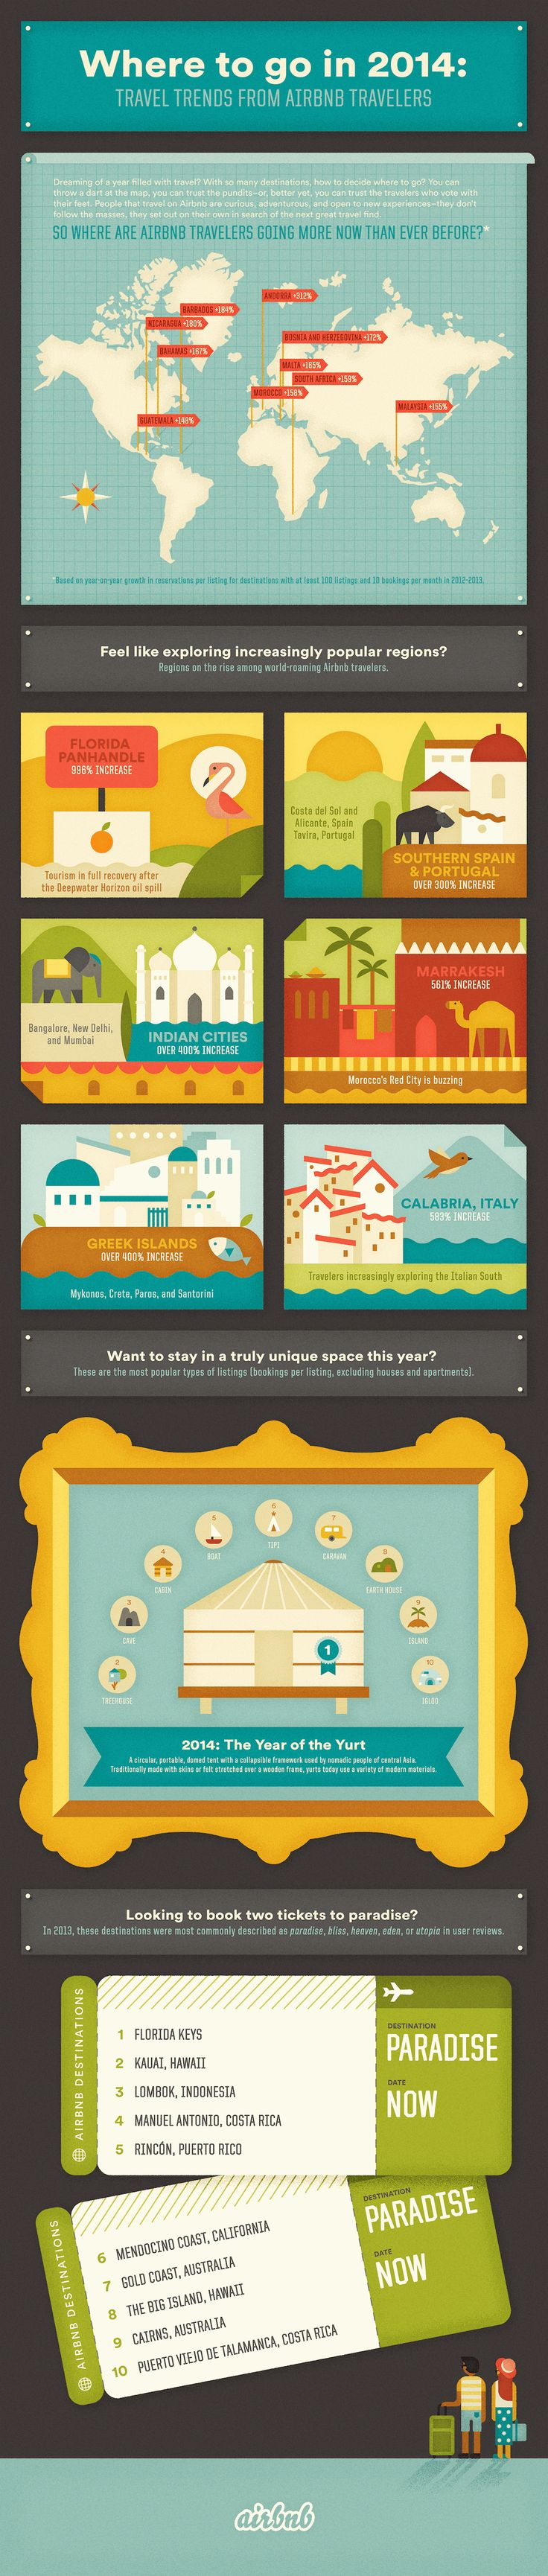 Airbnb 2014 #infographic where do travelers go this year?